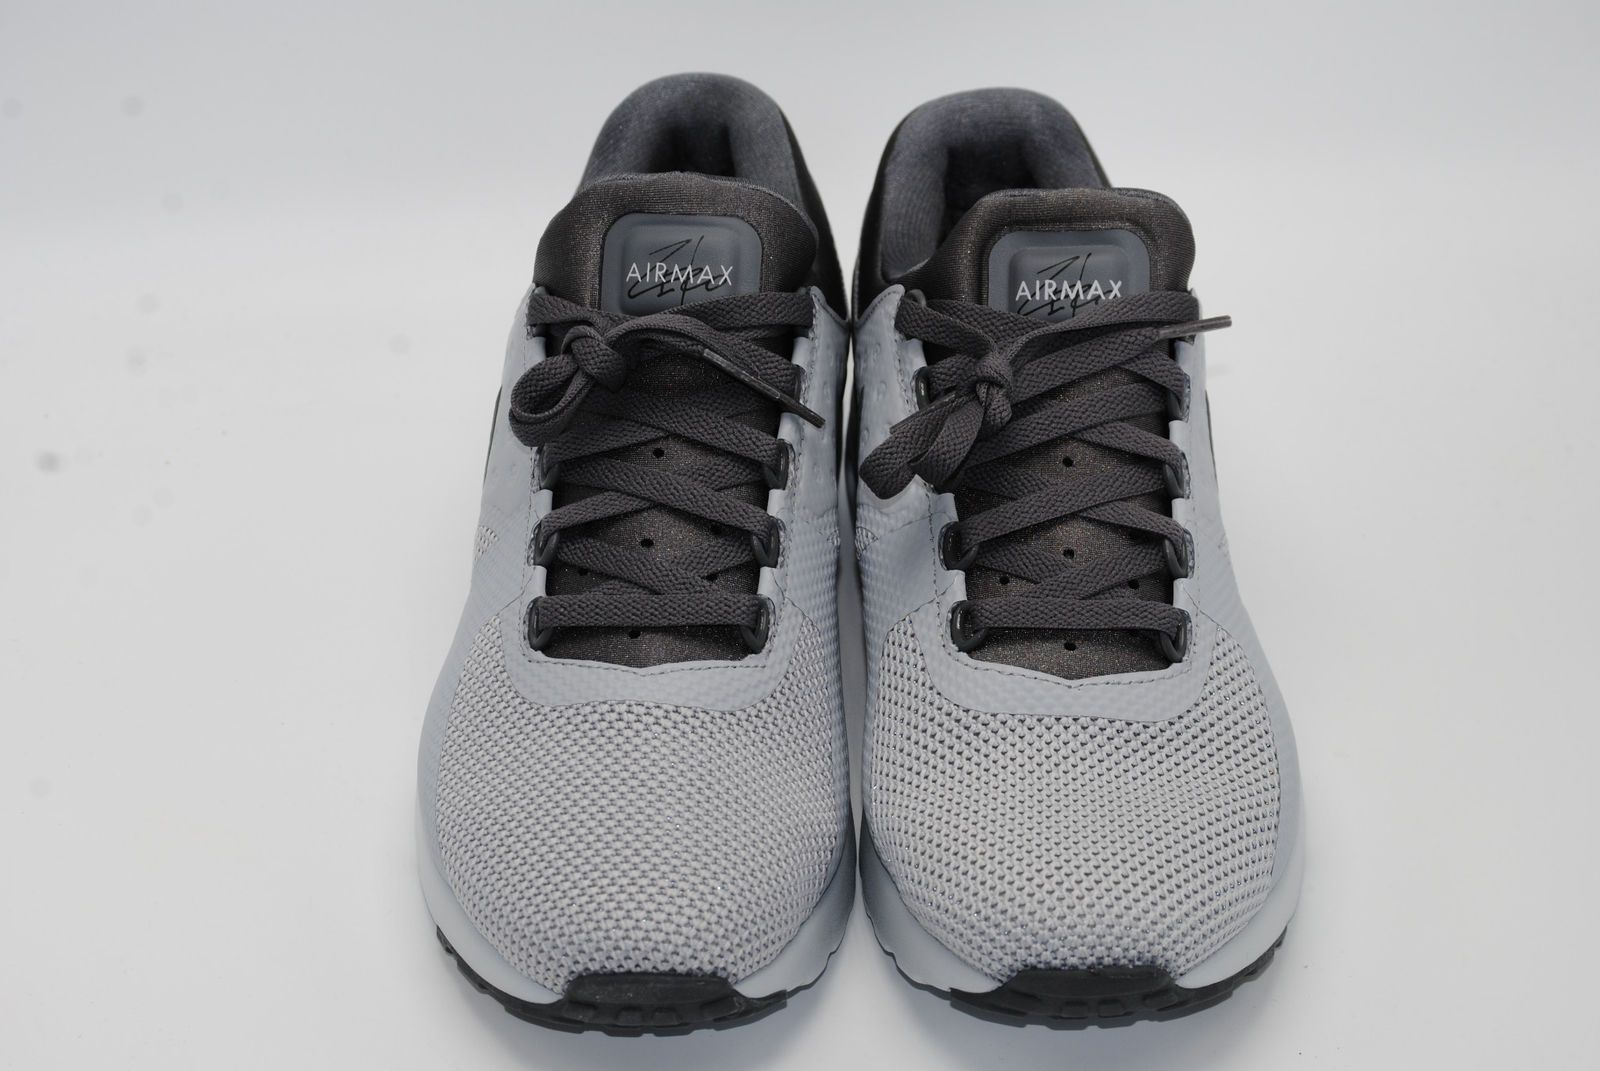 online store 0560f 22c6e Nike Air Max Zero Essential Men s sneakers 876070 012 Multiple sizes Great  shoes for your footwear choice, Afflink.